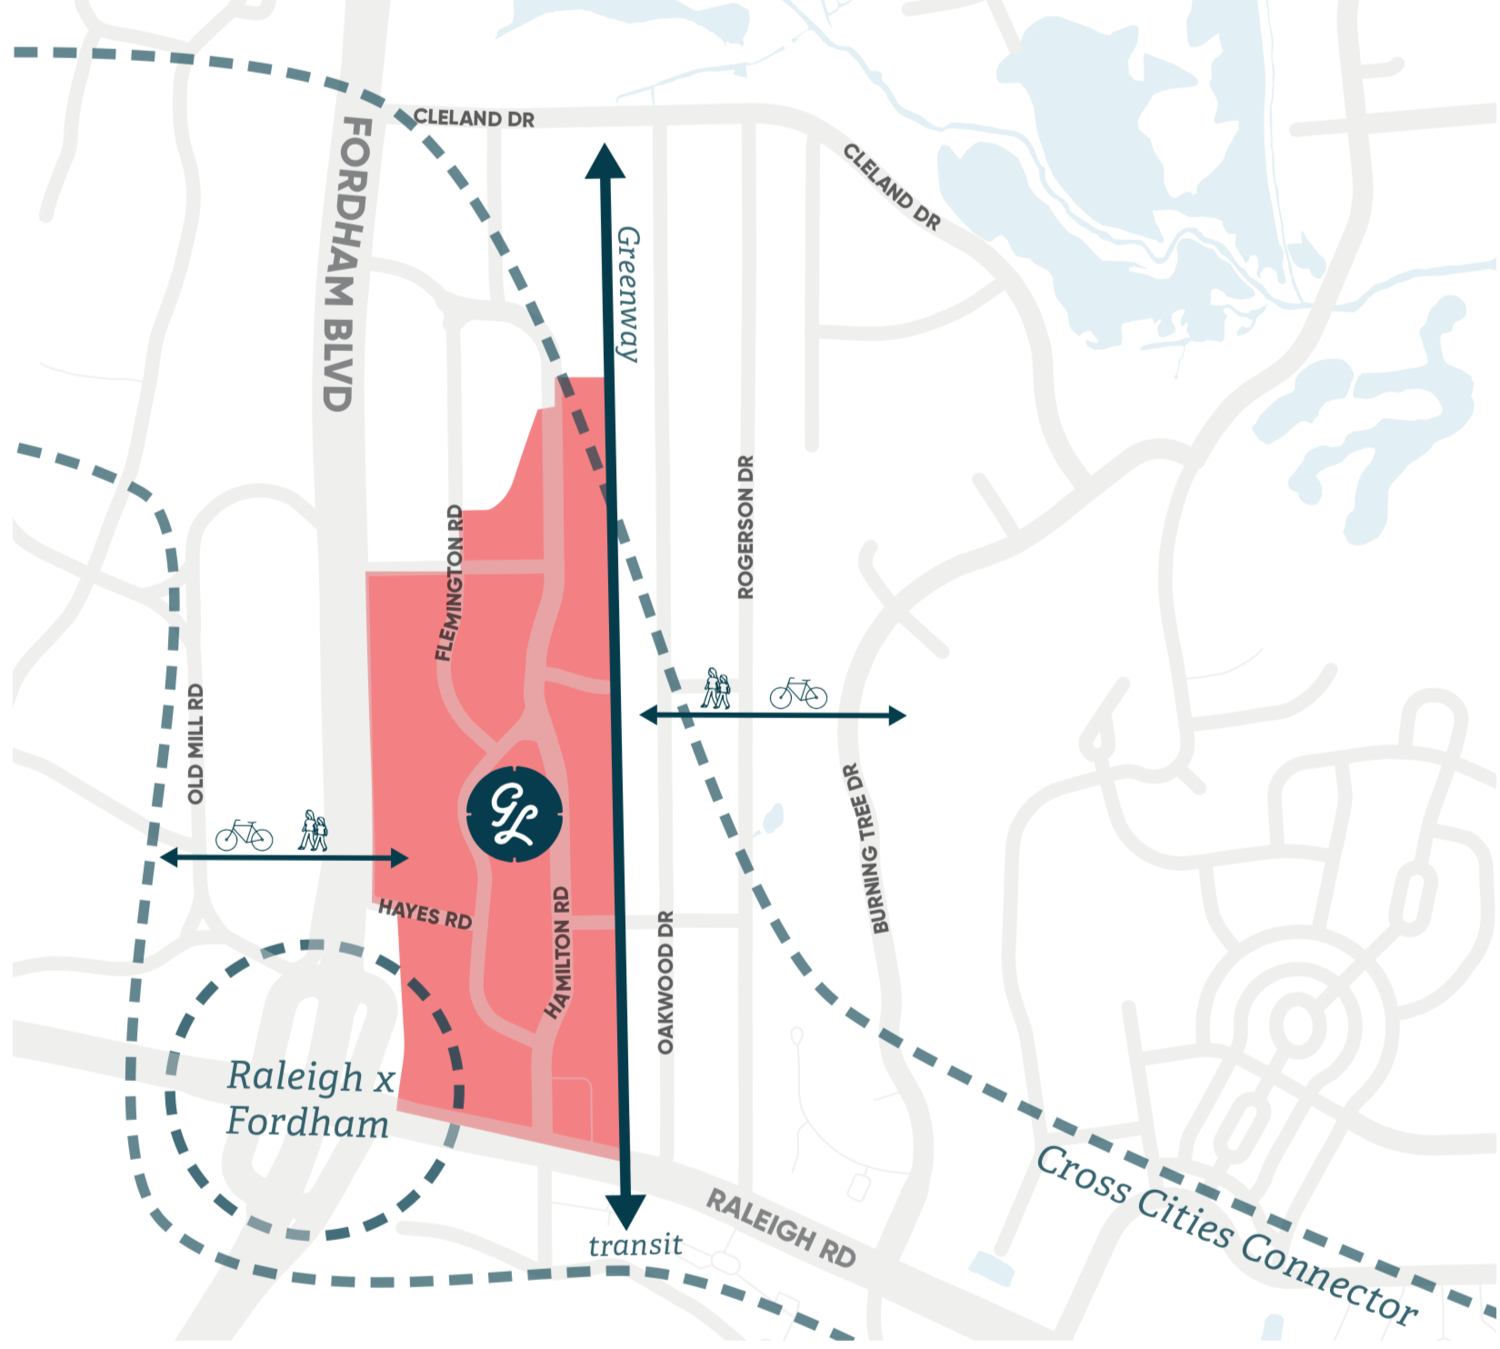 This year, Grubb Properties hired Copenhagenize Design Co. to conduct analysis and design a bicycle network strategy for the modern redevelopment of the Glen Lennox neighbourhood in Chapel Hill, North Carolina. -